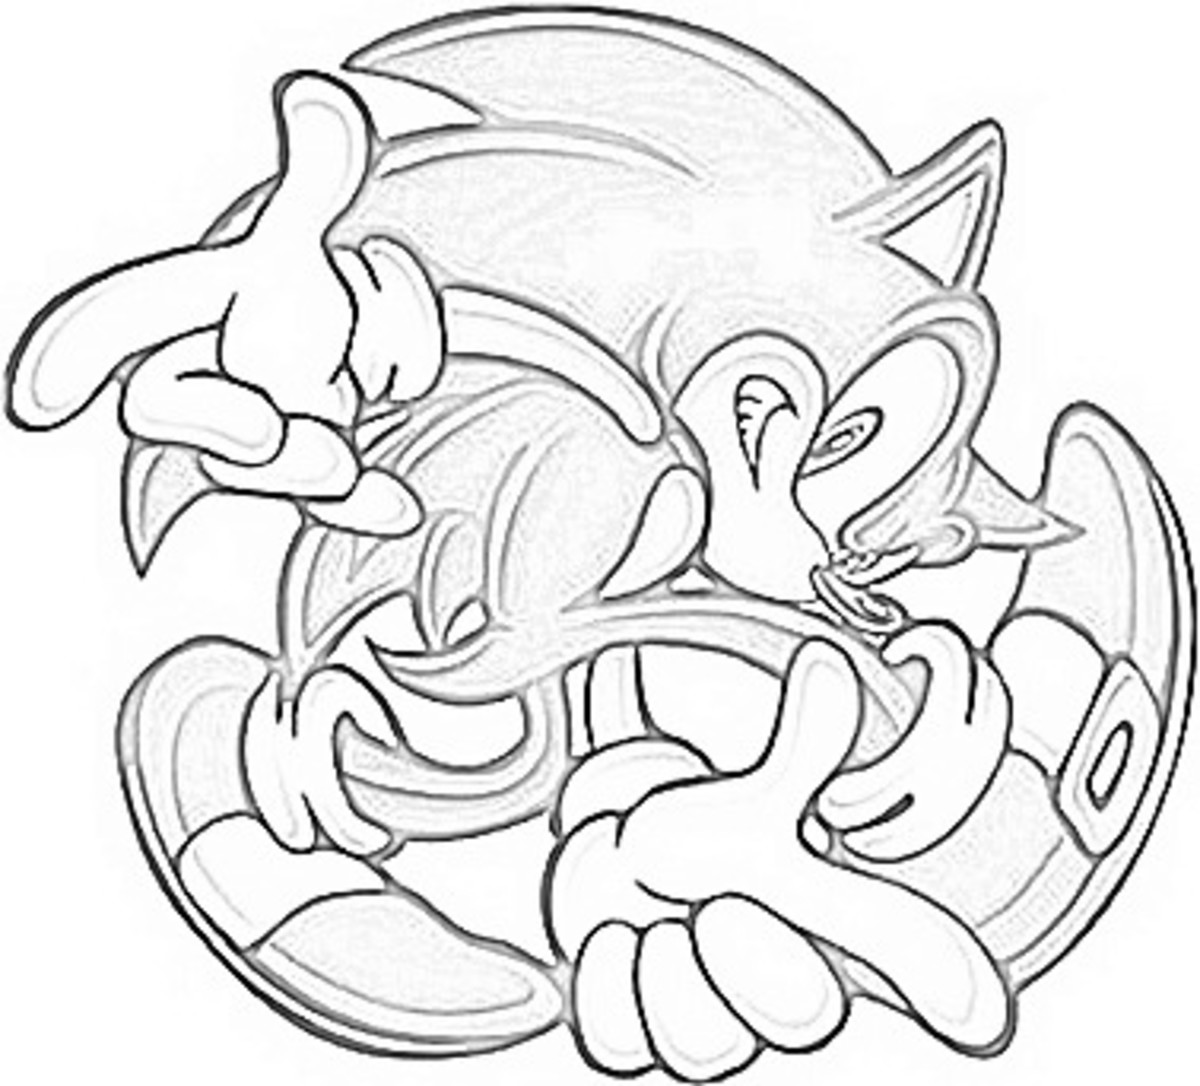 Sonic Pose7 - Sonic Hedgehog Kids Colouring Pictures to Print-and-Color Online